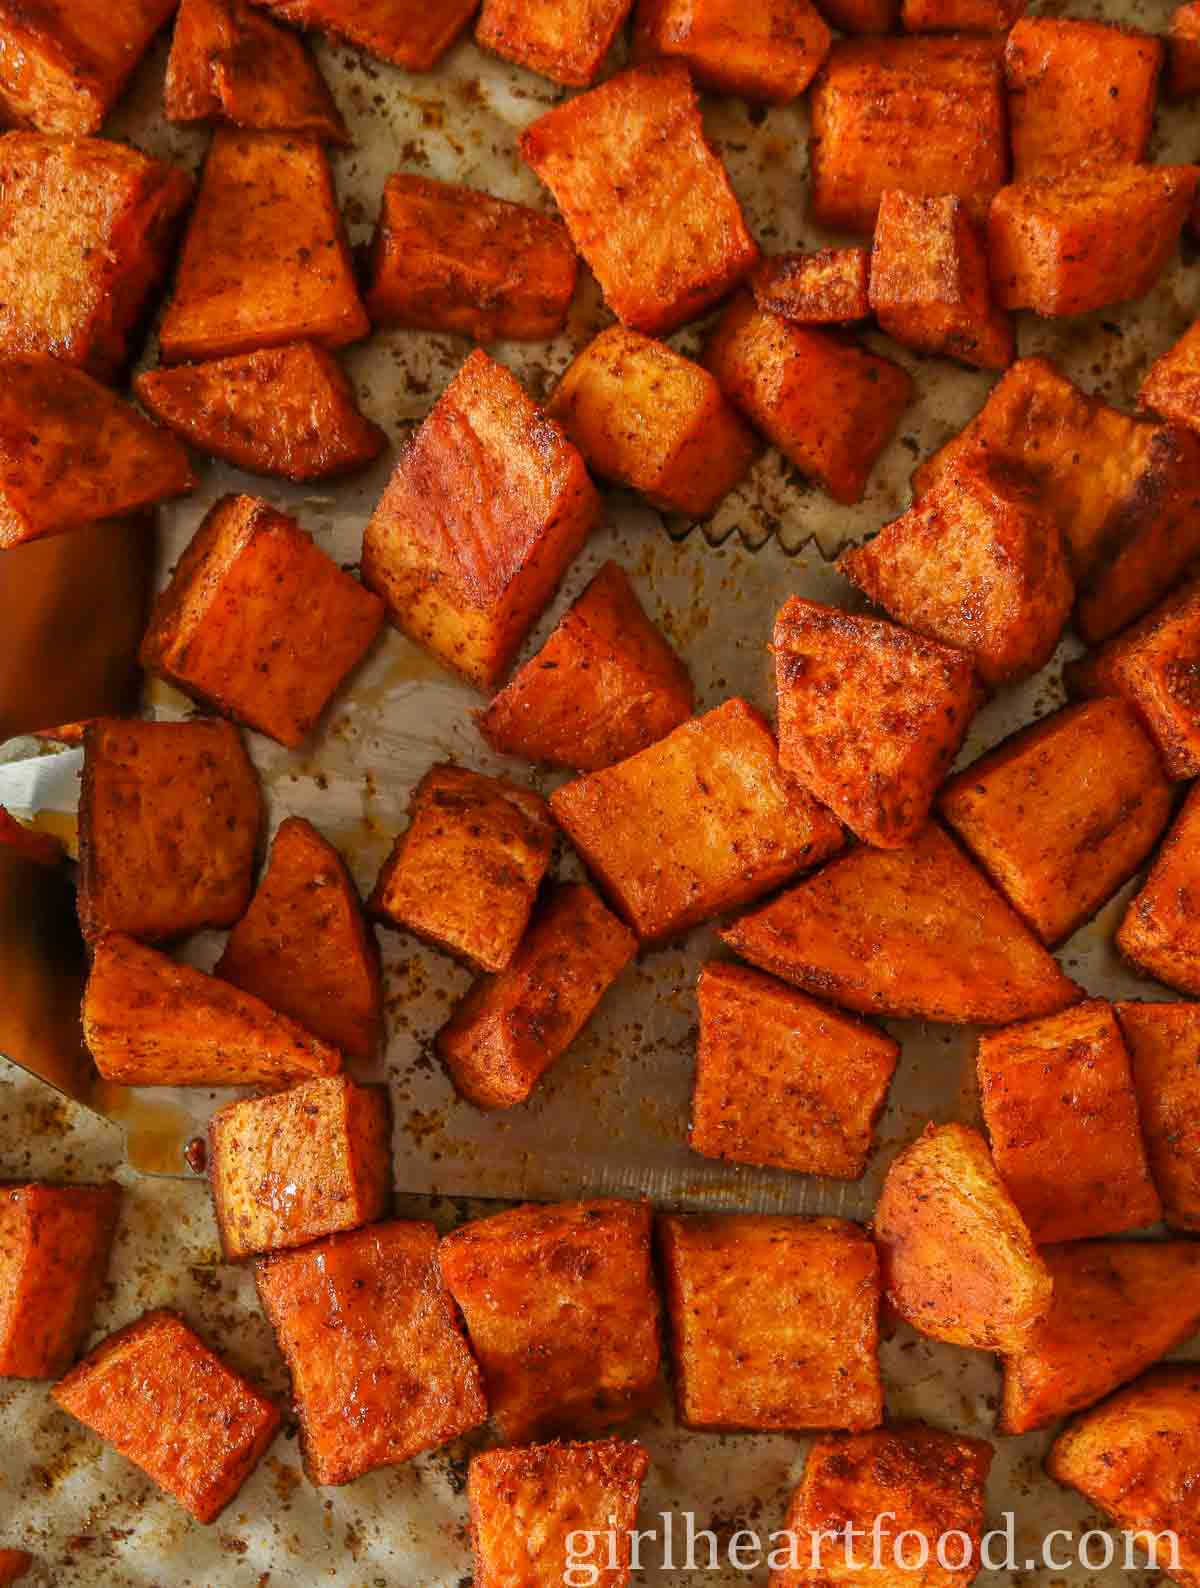 Cubes of roasted sweet potato on a sheet pan with a spatula underneath some.